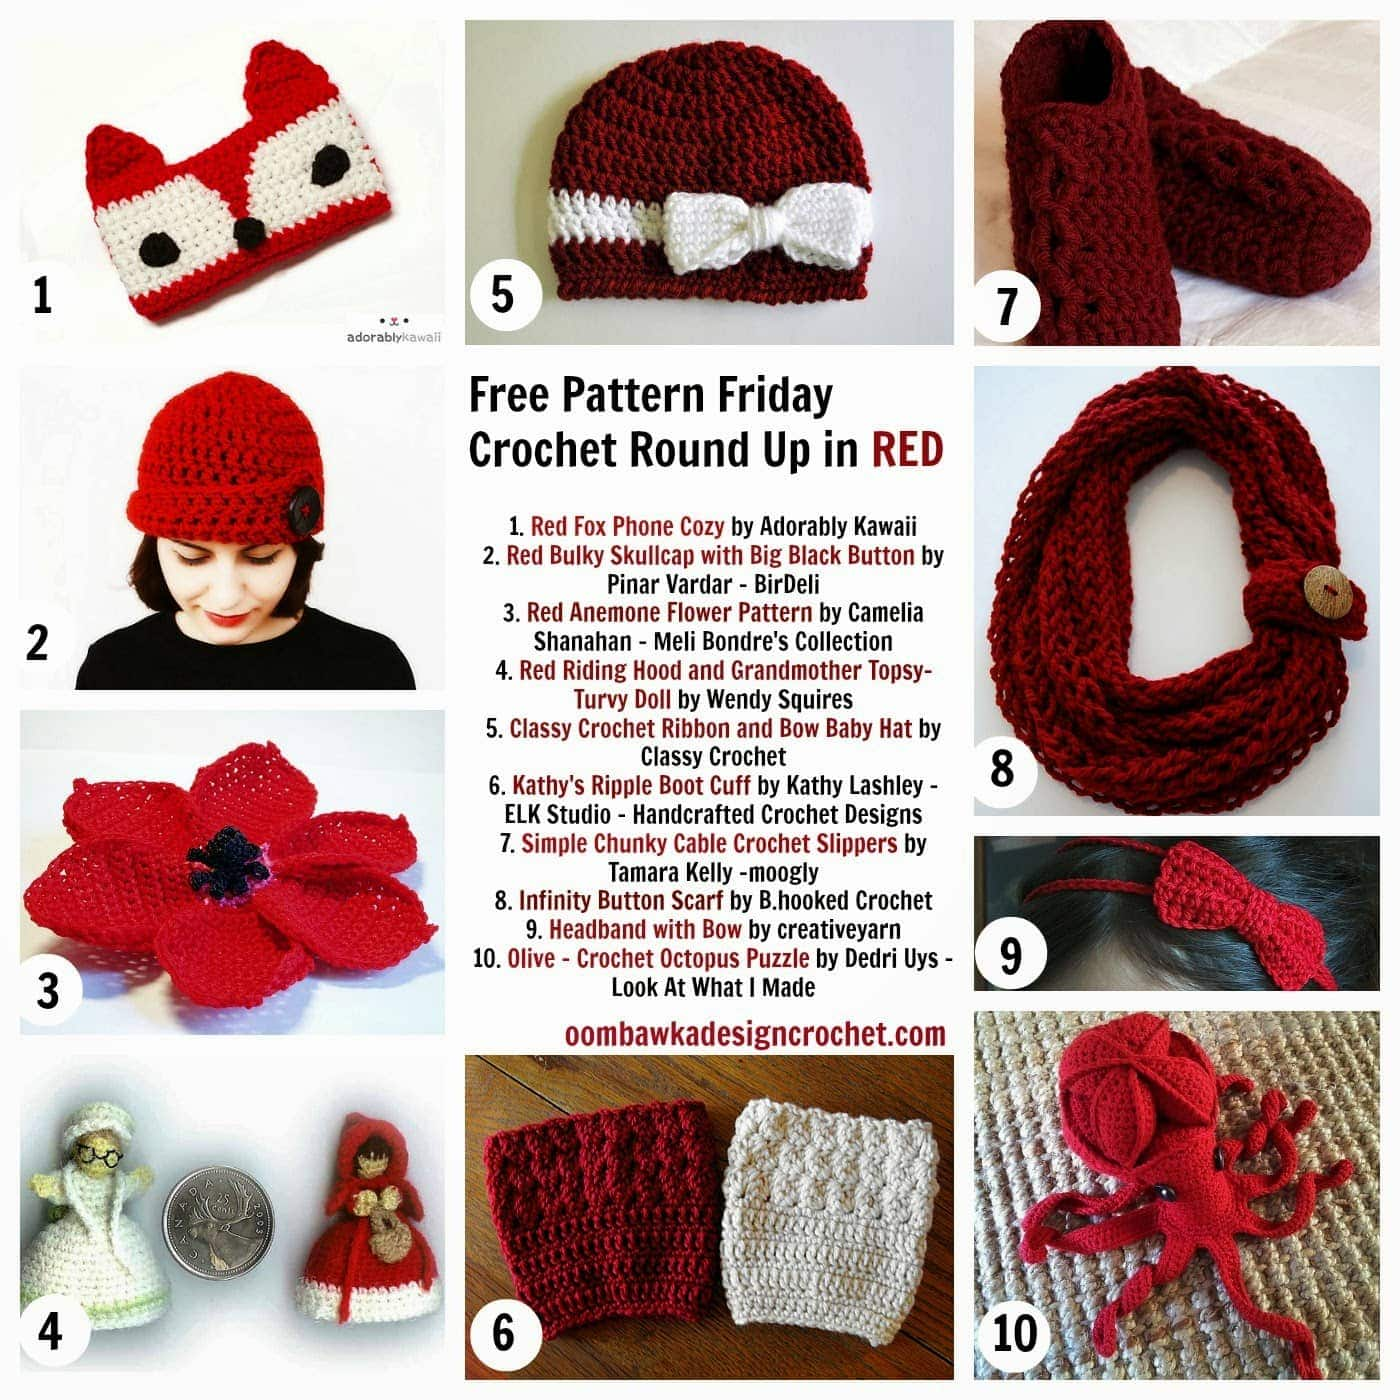 Free Patterns Crocheted in the Color Red